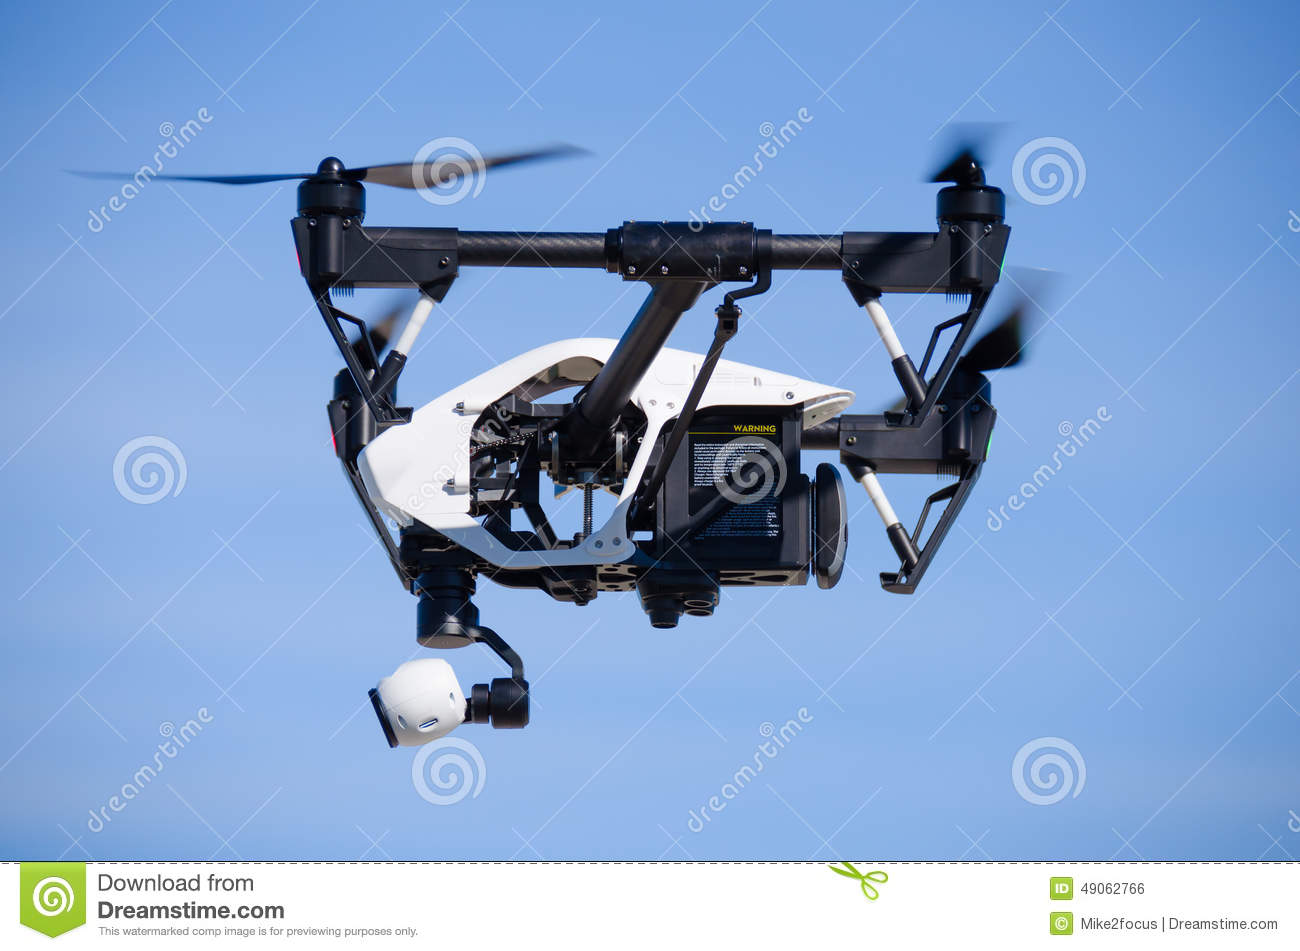 Inspire 1 Drone Flying Side View Closeup